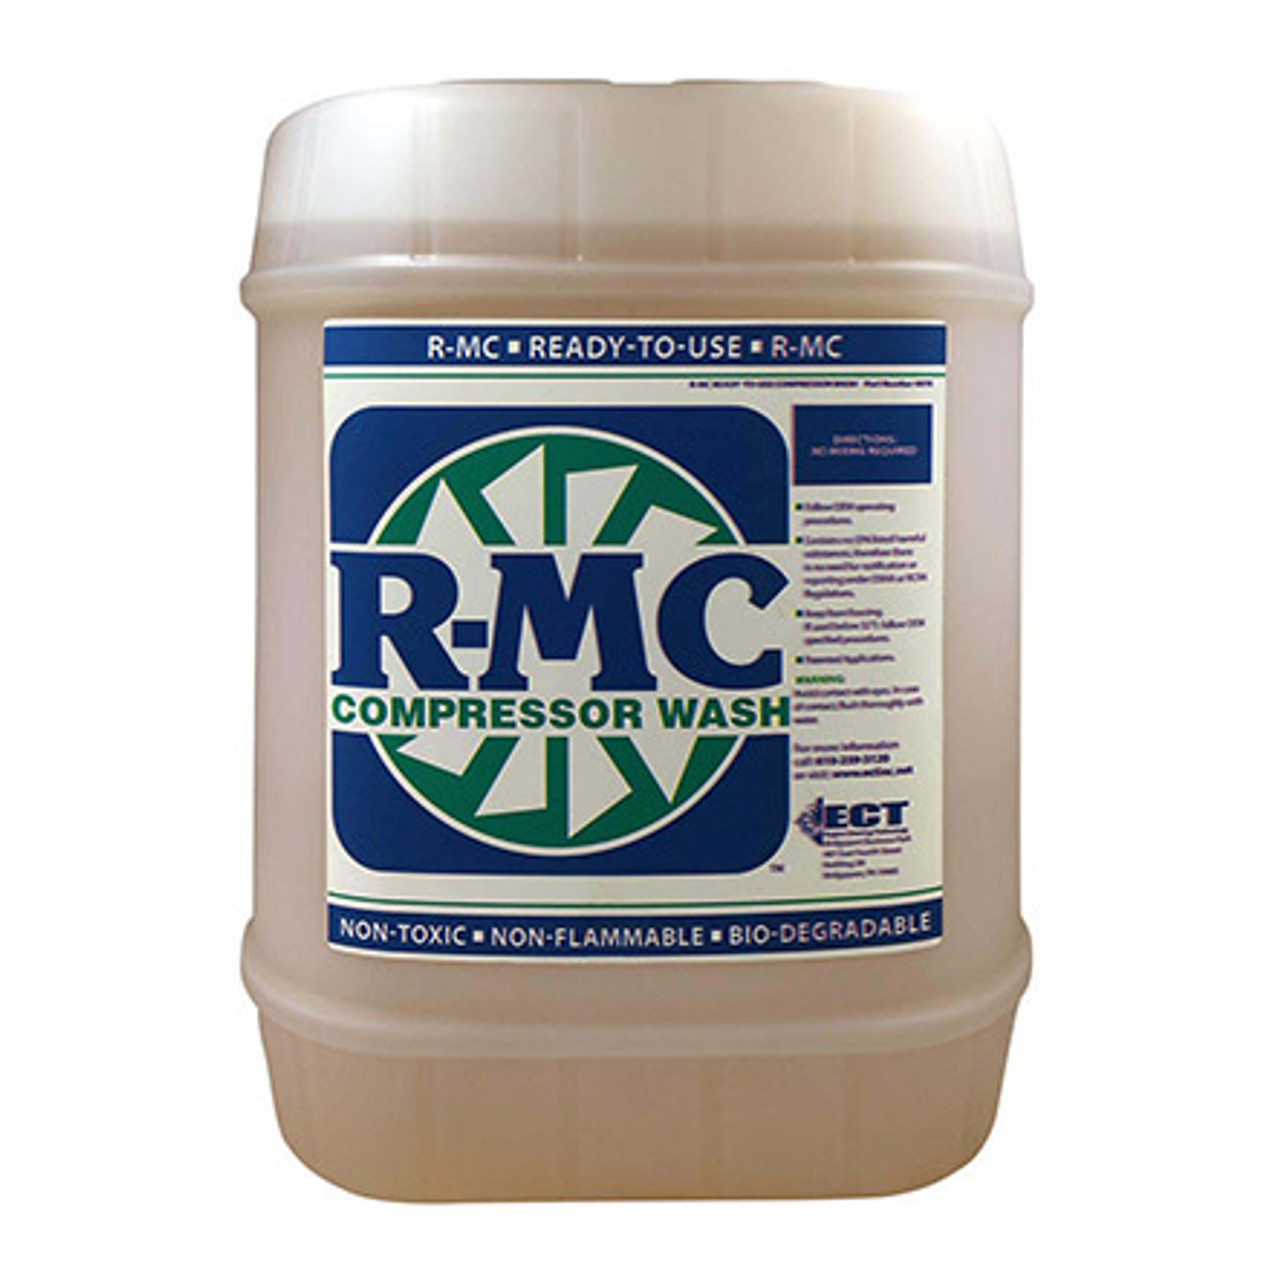 R-MC 4072-05 Concentrate Turbine Engine Compressor Wash - 5 Gallon Pail Part#: 4072-05by ECT Inc. ECT R-MC Series engine cleaner concentrate (6:1) has a 7.5 to 8.5 pH level that ensures better cleaning of the surfaces without deteriorating the finish. With 23.7 millimeters Hg vapor pressure, this slight sweet odored cleaner has a specific gravity of 1.03 at 20 degrees C and a boiling point of 215 degrees F. This biodegradable liquid cleaner is yellow in color and comes in a 5-gallon pail.